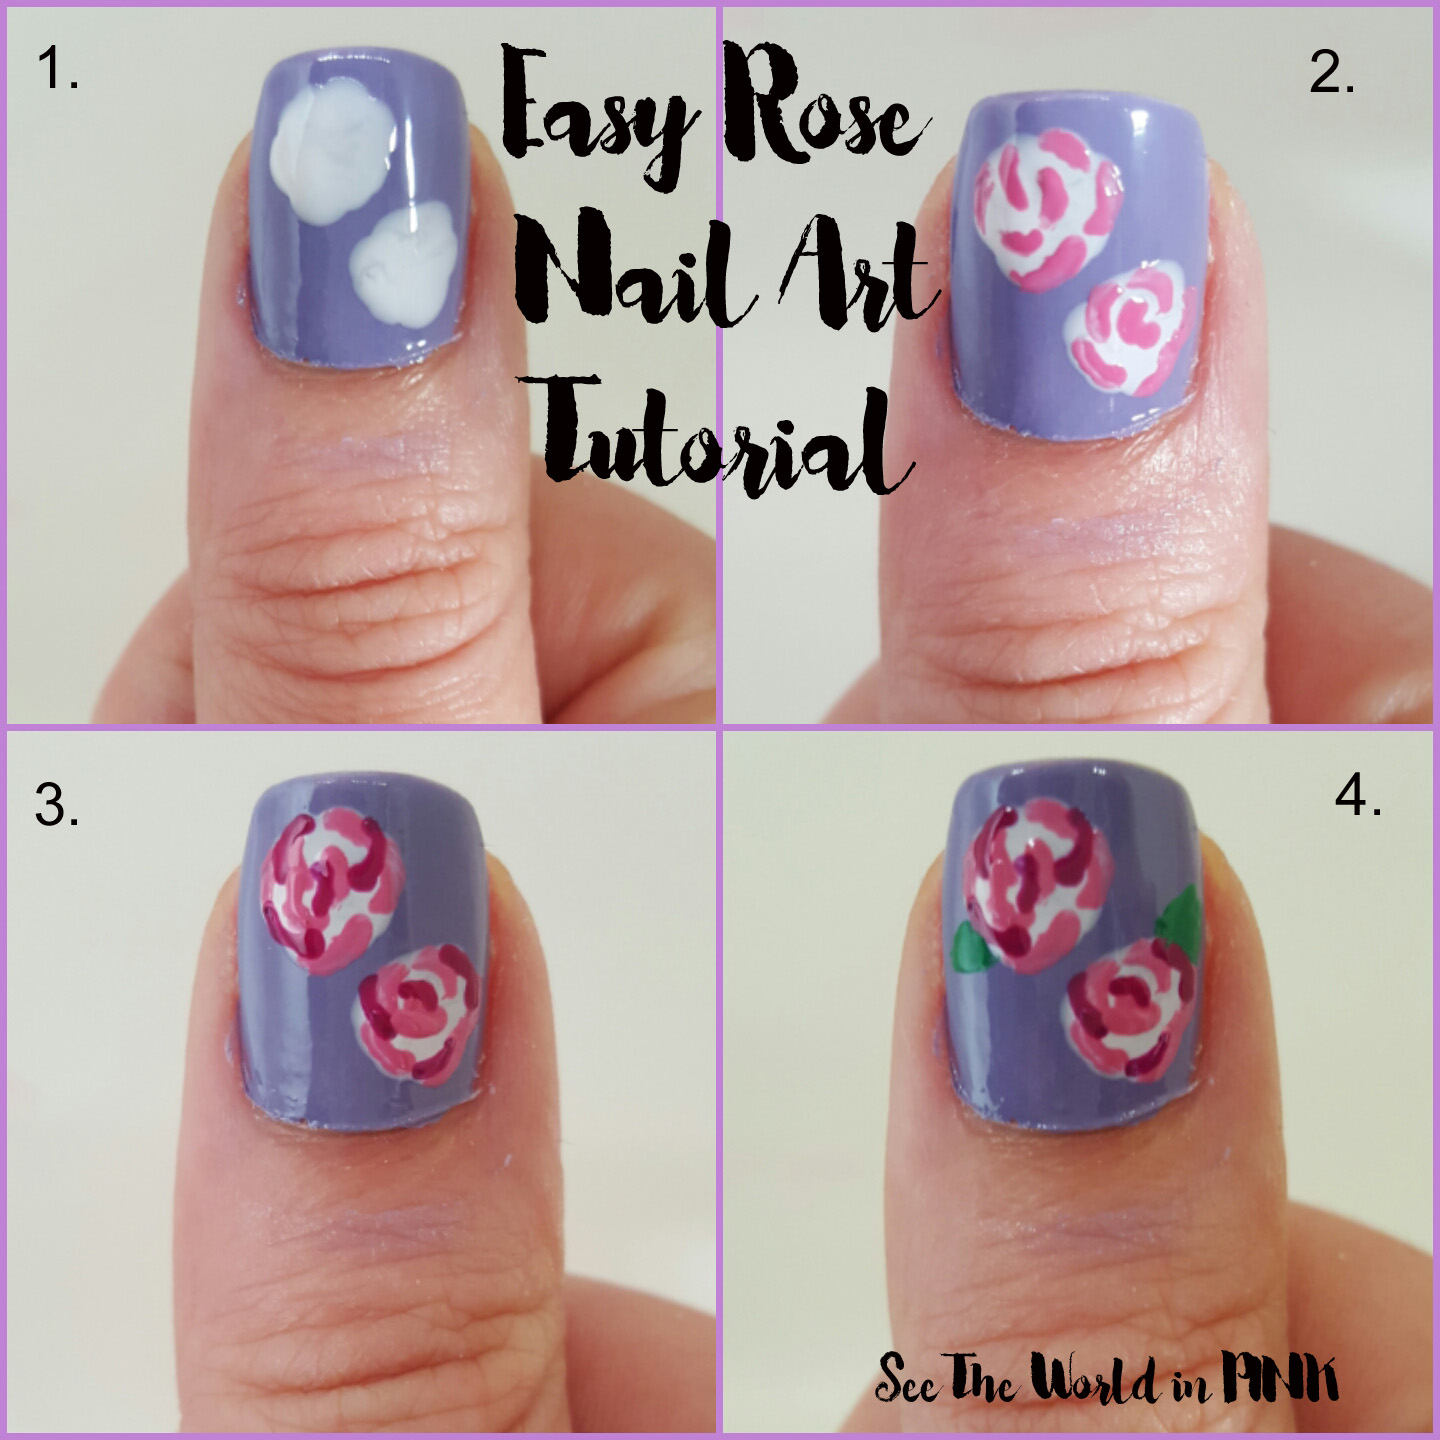 rose nail art how to tutorial